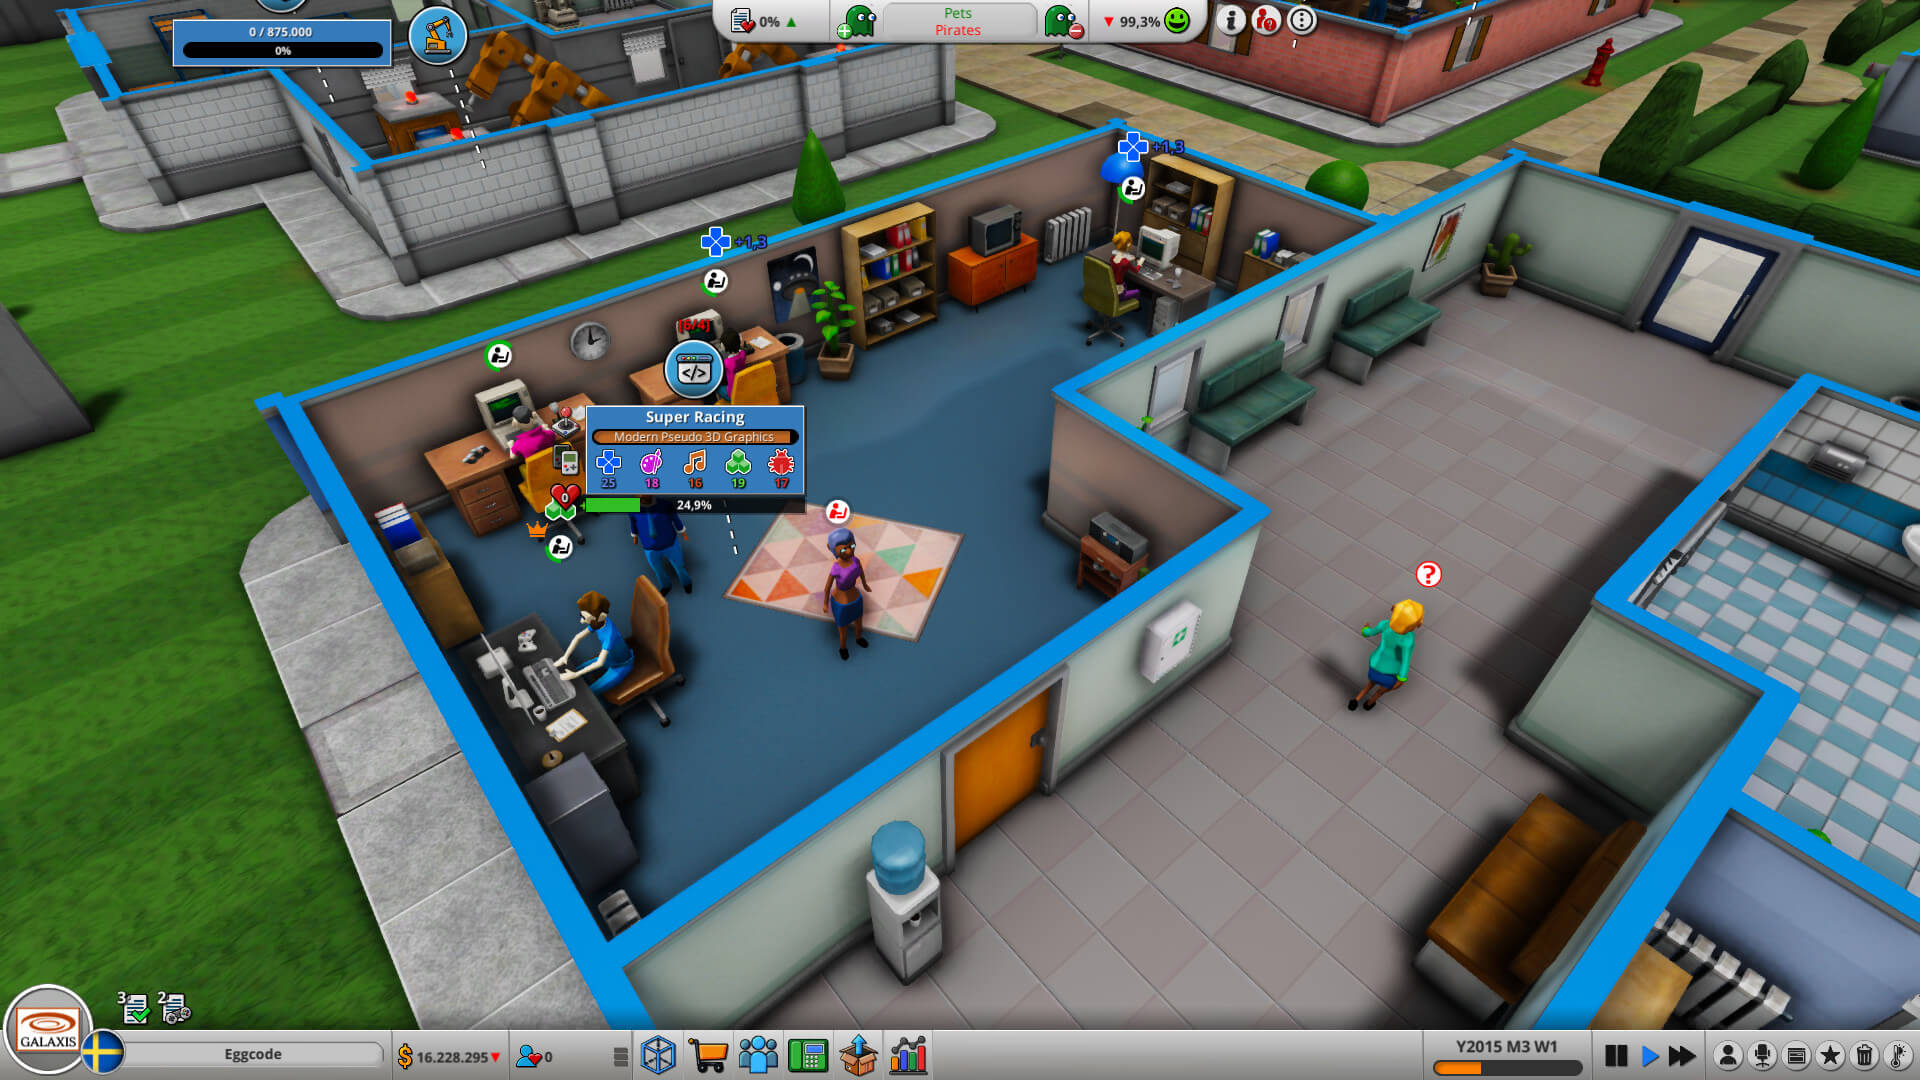 Mad games tycoon oyun inceleme